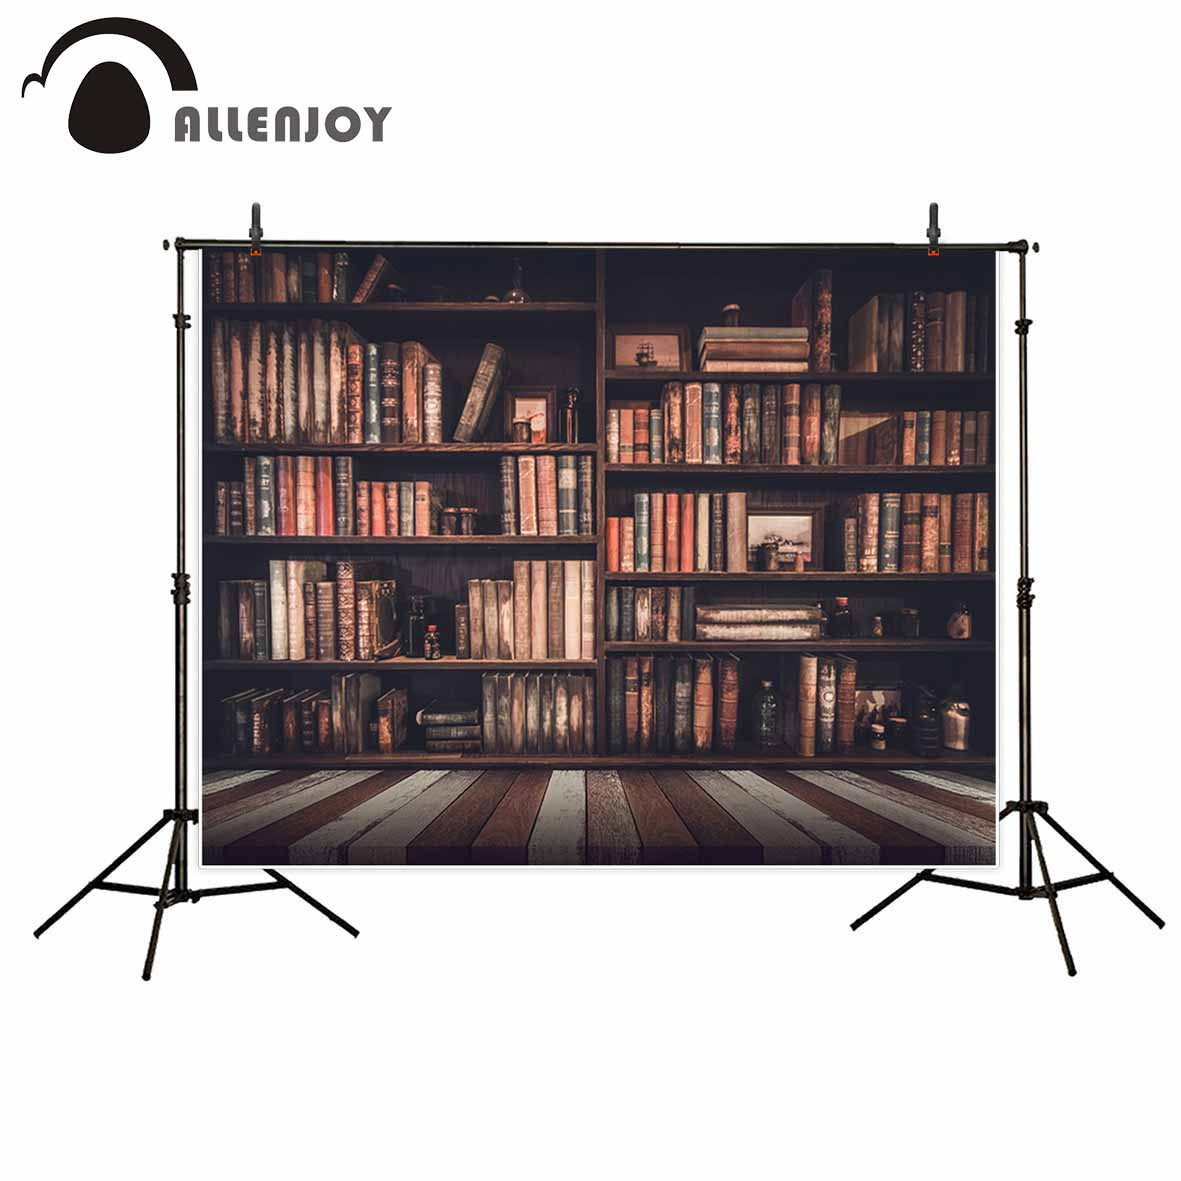 Allenjoy bookshelf wood floor vintage photo backdrop board library school indoor Newborn baby photography background photobooth allenjoy photography backdrops library bookshelf school student study room books photocall baby shower